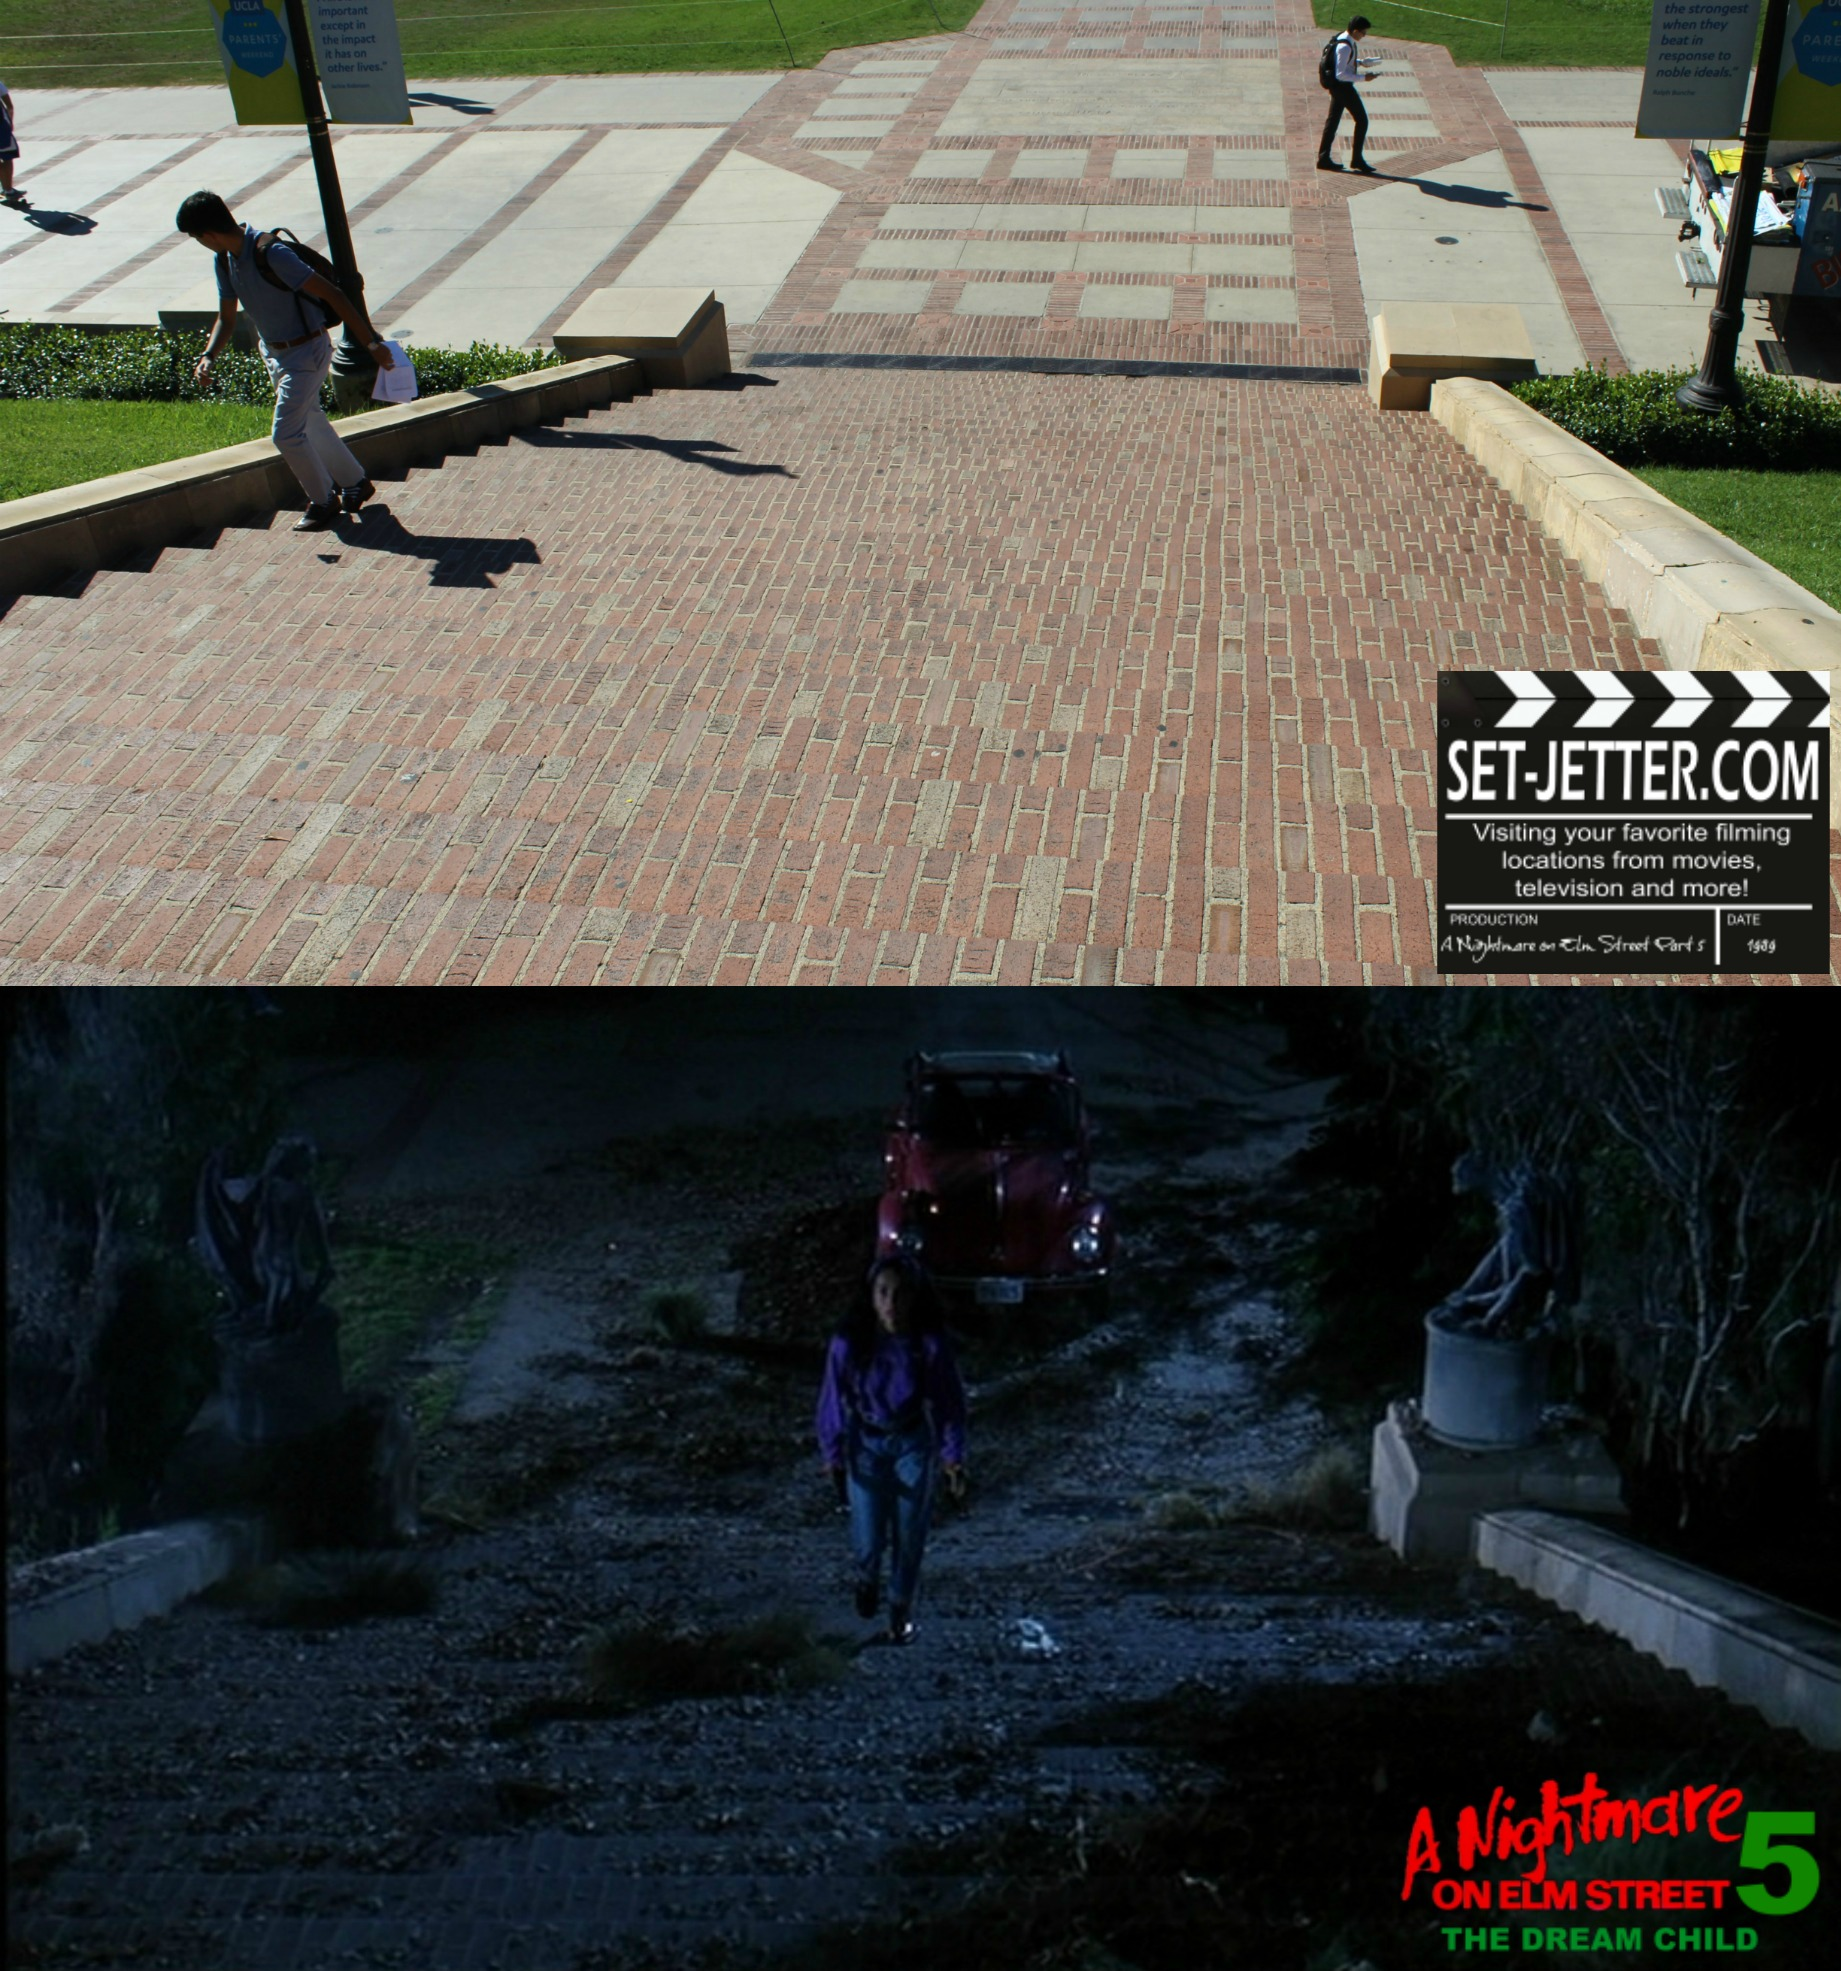 Nightmare on Elm Street Part 5 comparison 31l.jpg